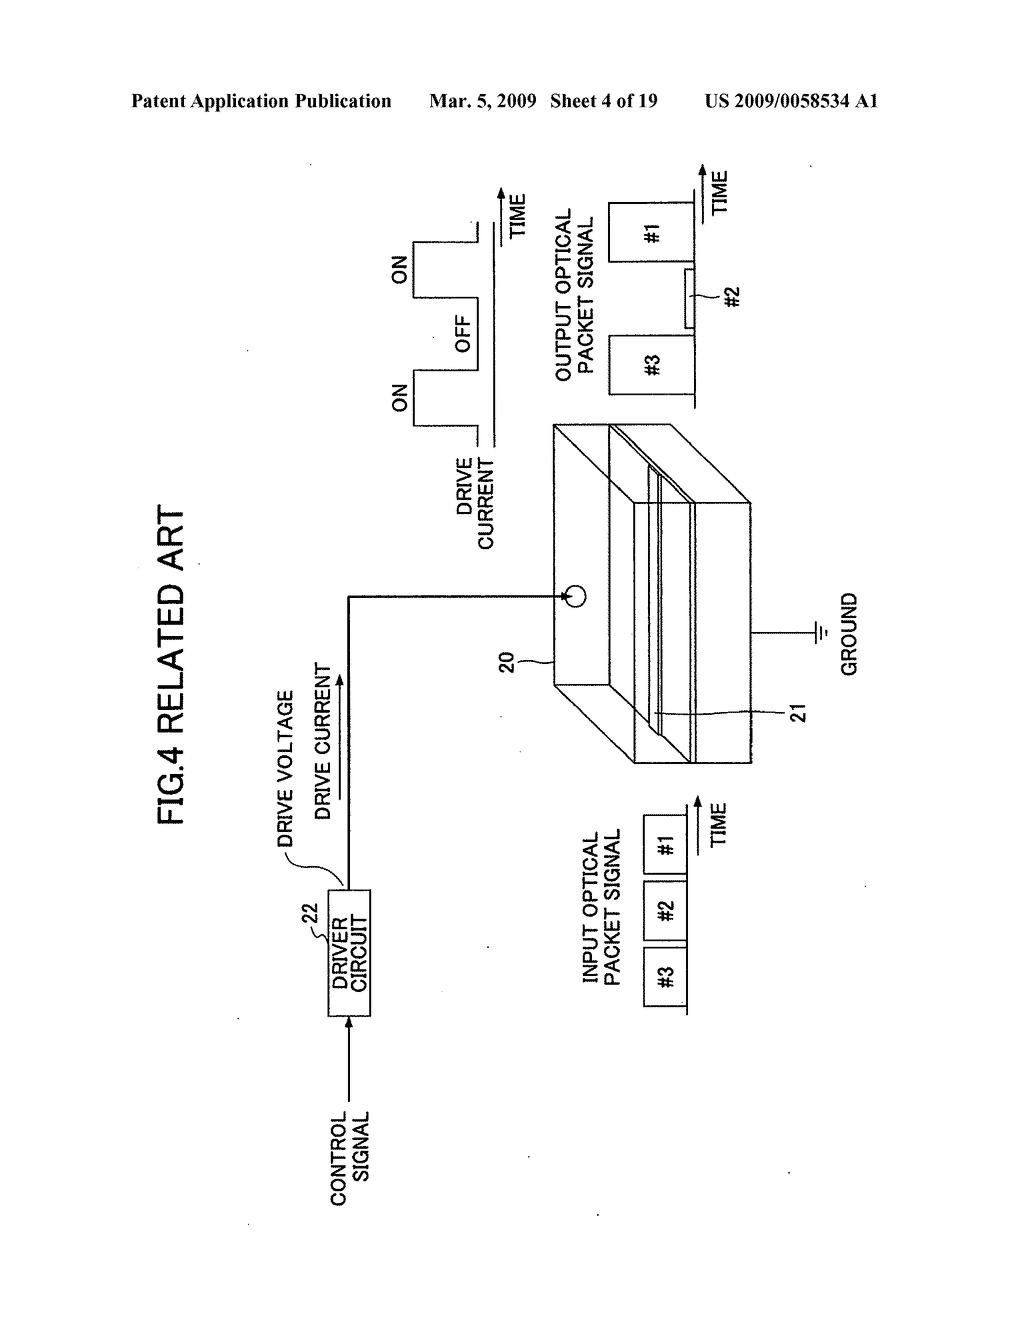 Non Inverting Amplifier Circuit And Optical Switch Driver Vs Noninverting Diagram Schematic Image 05